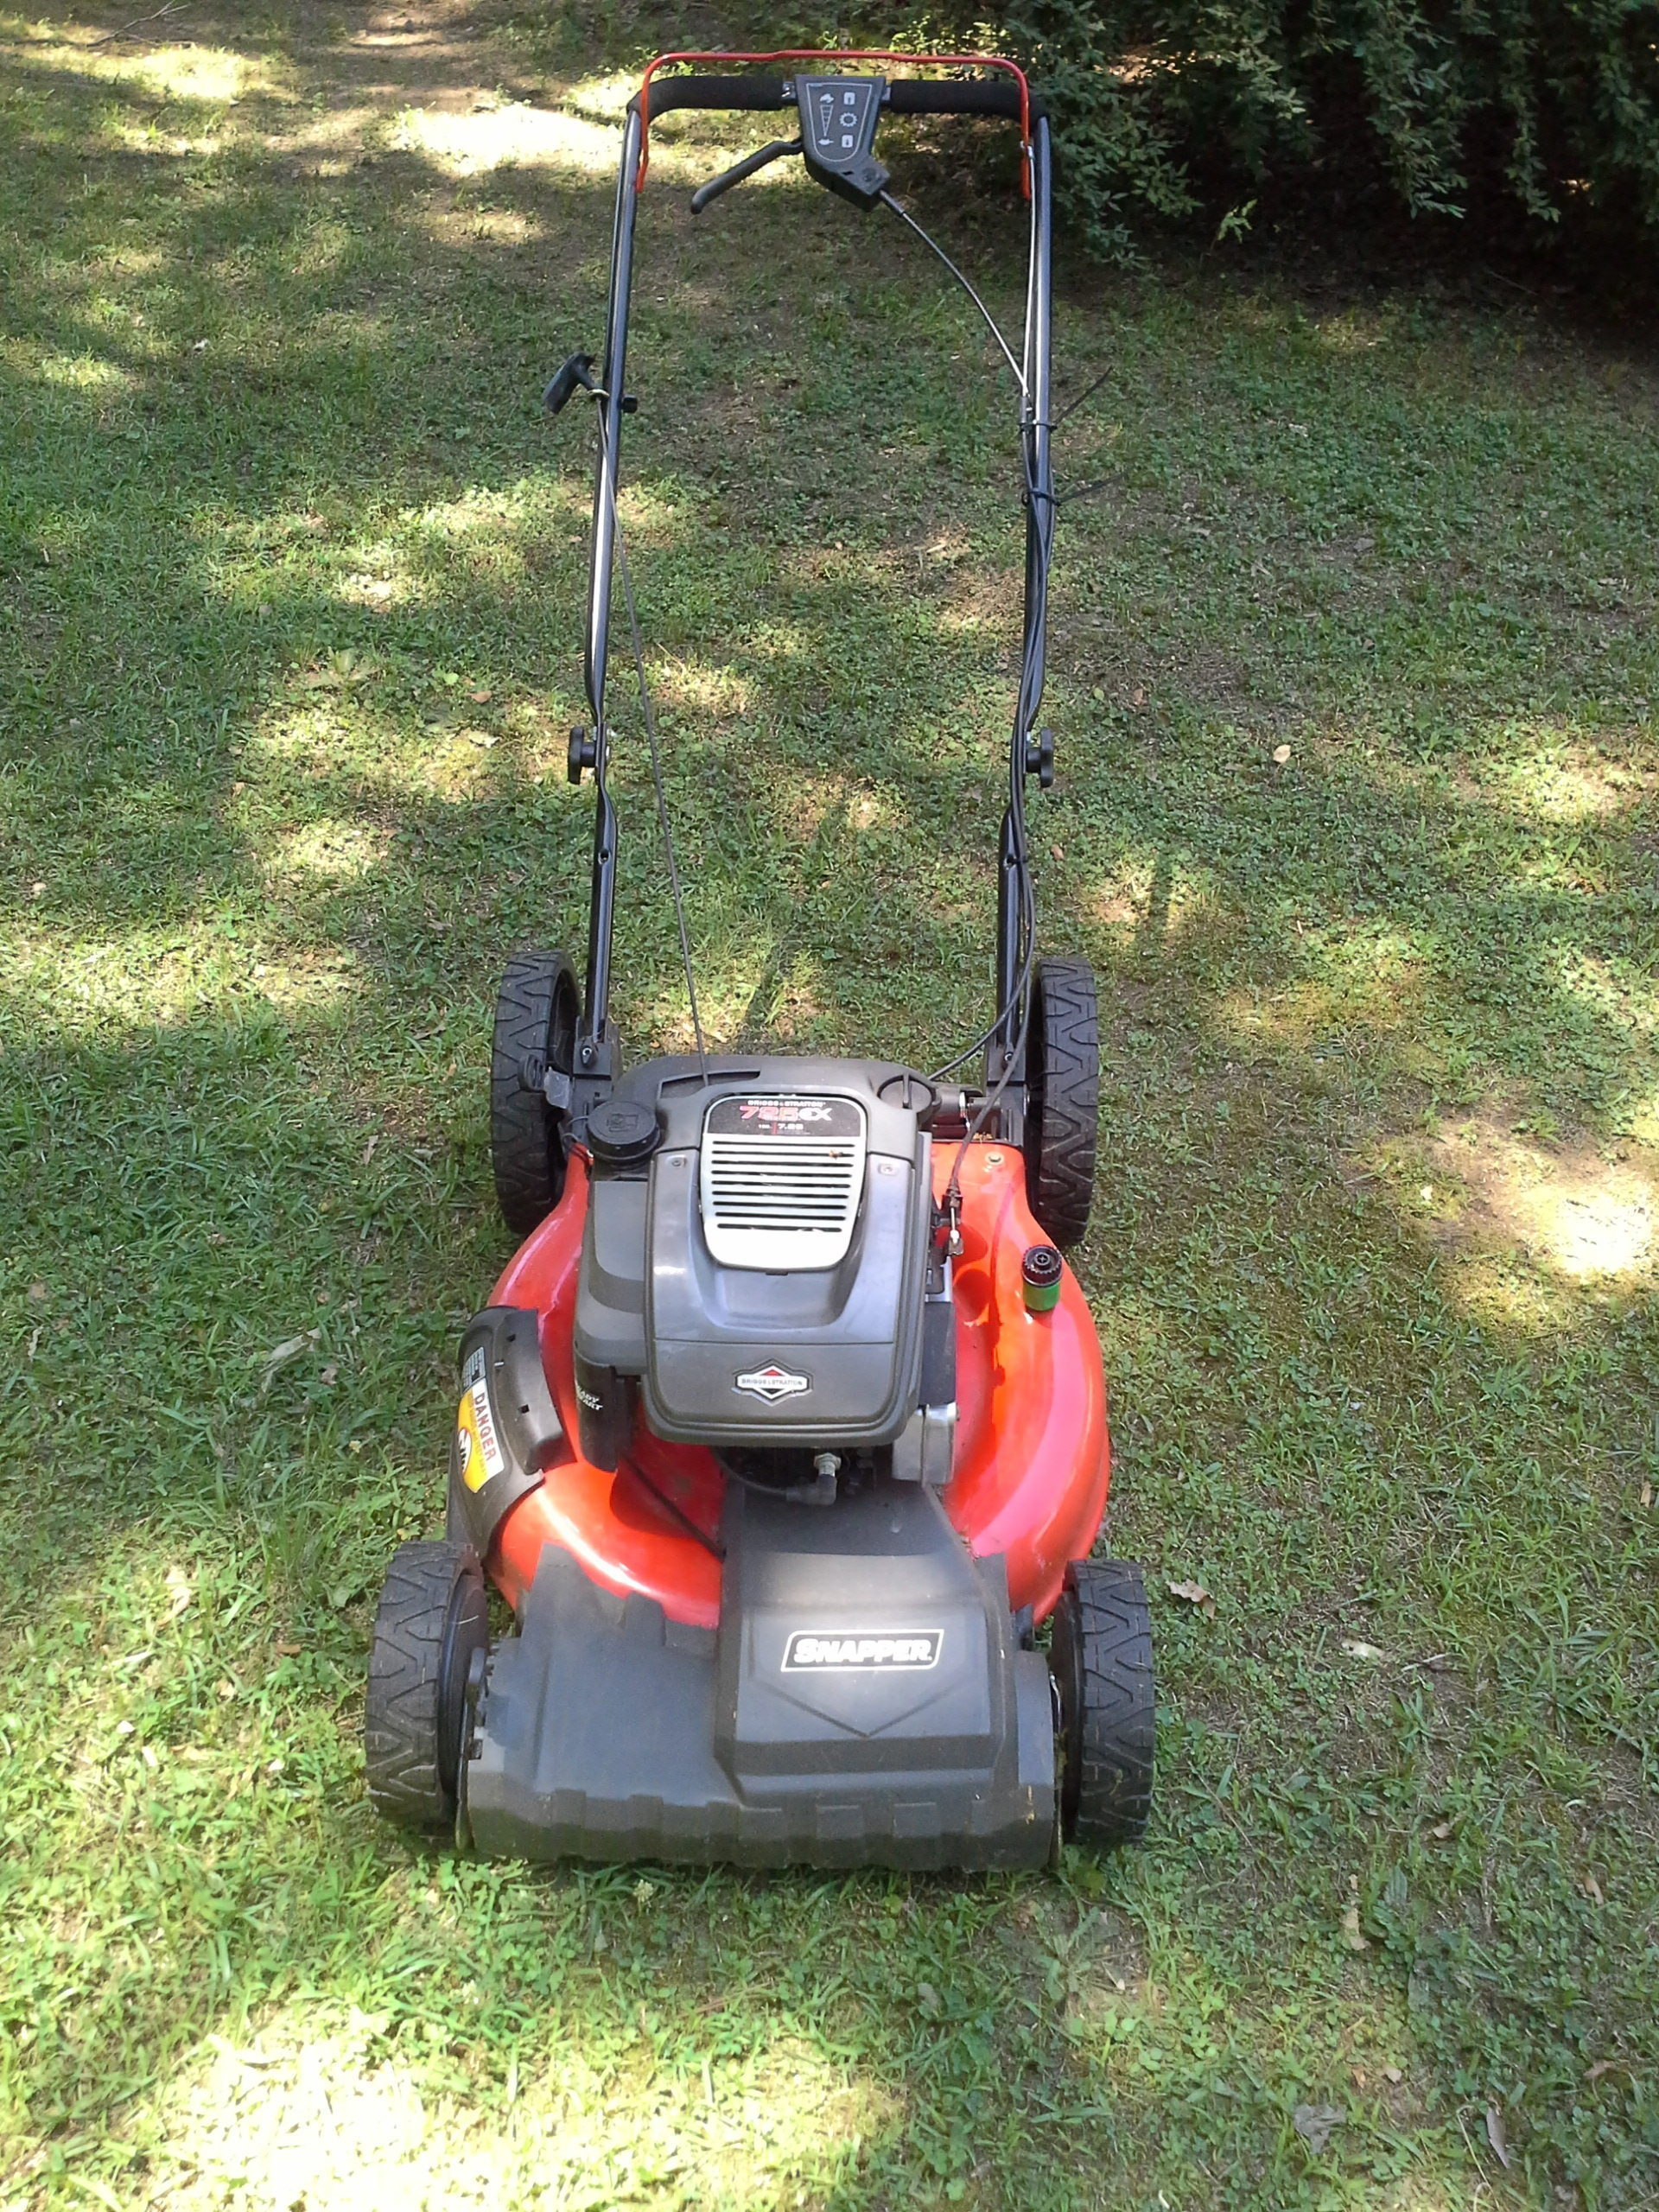 Riding lawn mower won t start - I Purchased The 725ex Model Based On The Proud Snapper Name And Also Owning A Riding Mower Of The Same Name I Found That My Local Wal Mart Was Selling This